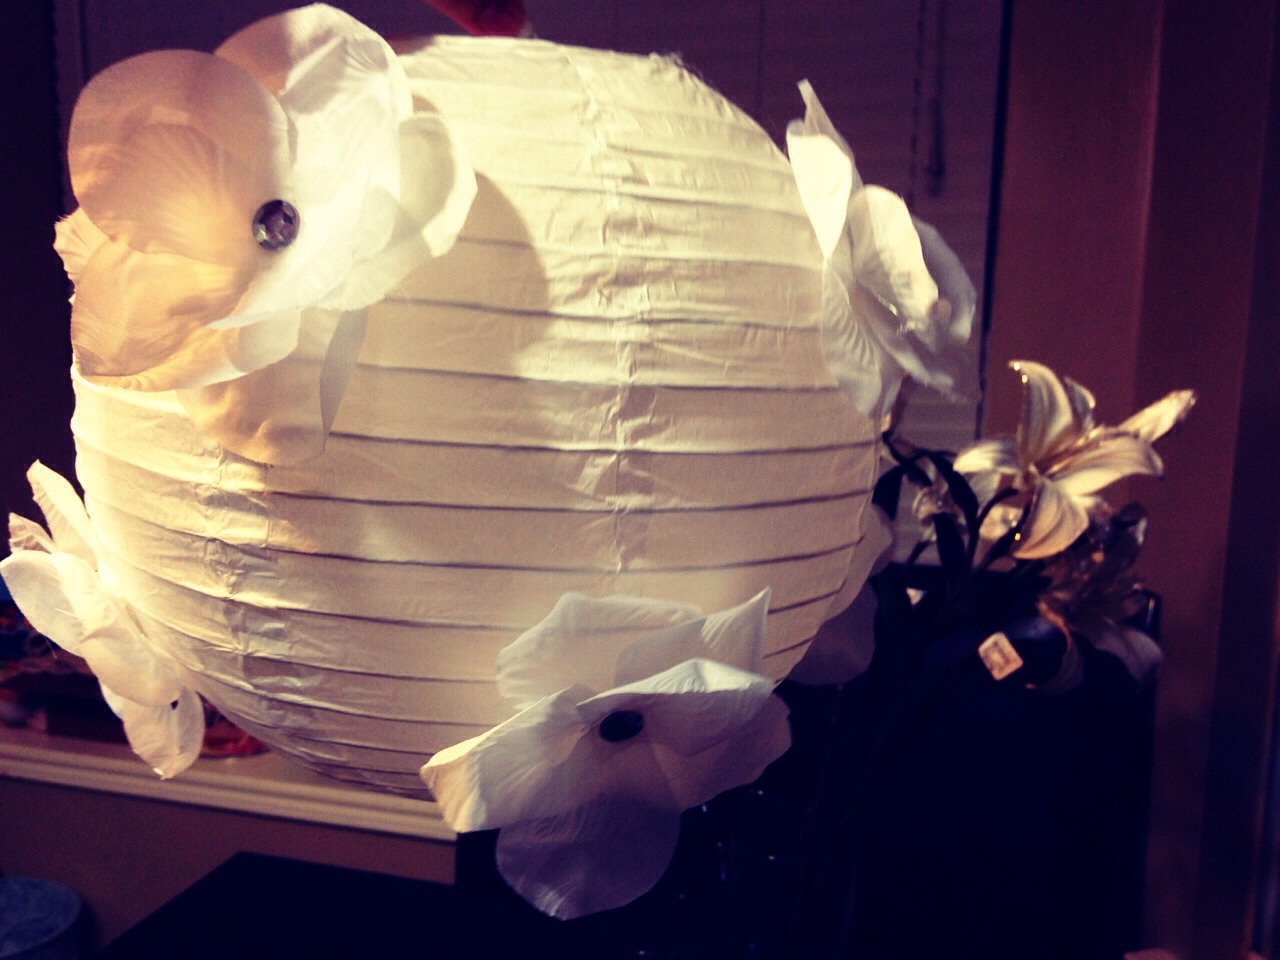 Dress up a paper lantern; great for wedding decorations!   All you need is:  Paper Lantern Silk Flowers Gem stones Hot glue gun  Take the petals off of the silk flowers and arrange them accordingly, then glue a gemstone in the middle. Glue each arrangement onto the paper lantern and you're done!